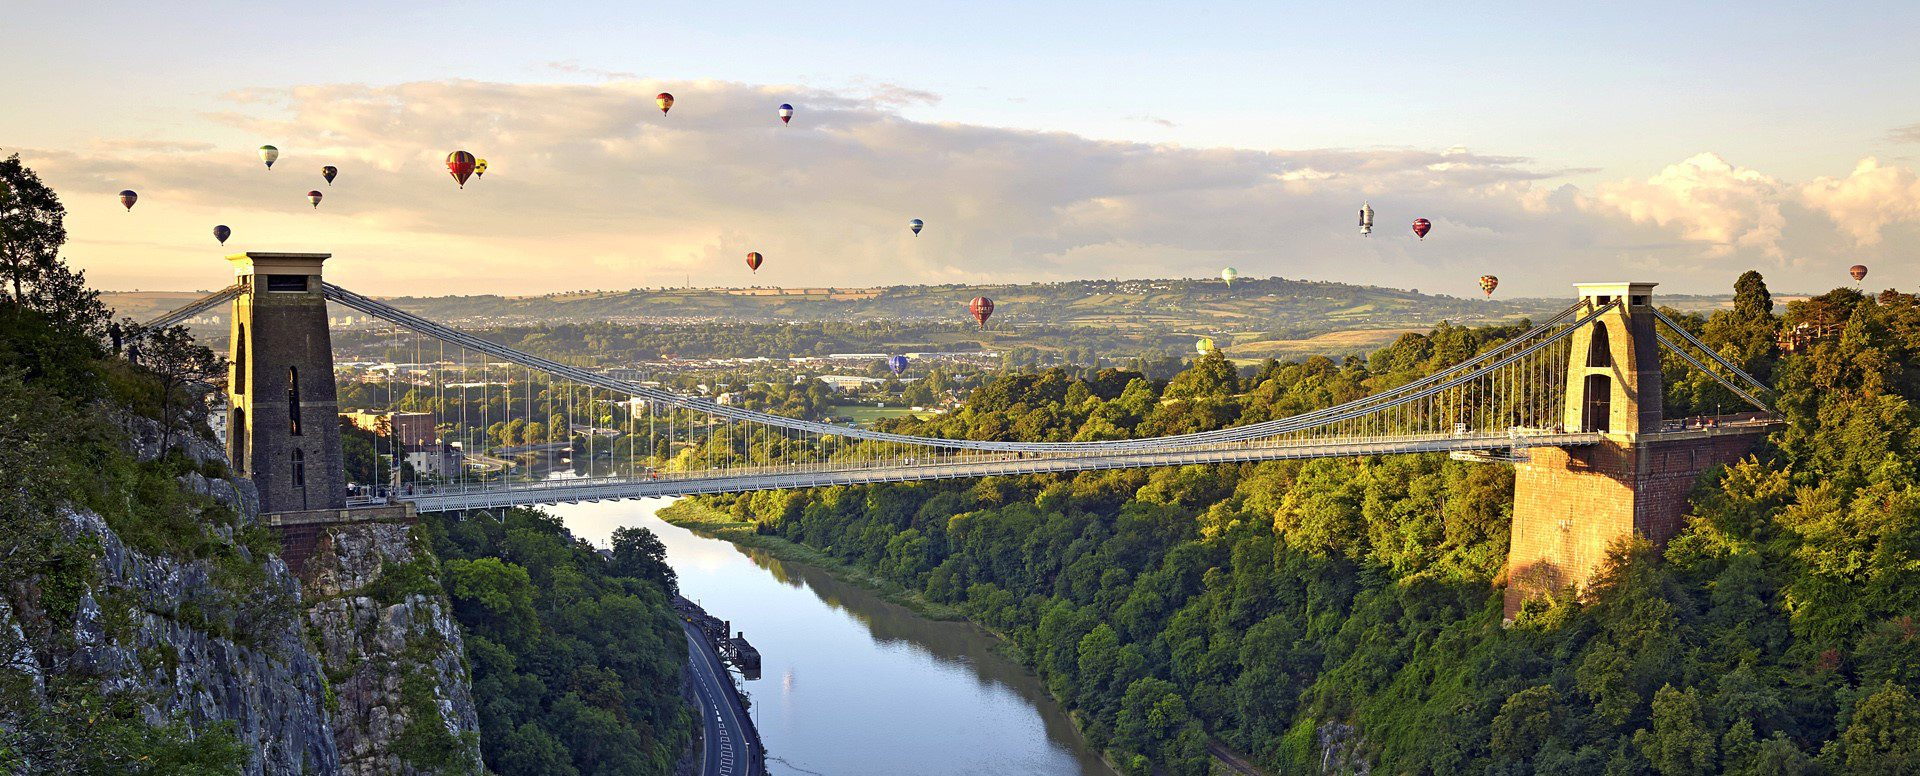 Picturesque shot of Clifton Suspension Bridge lit by the sun with around 15 hot air-balloons in the distance.